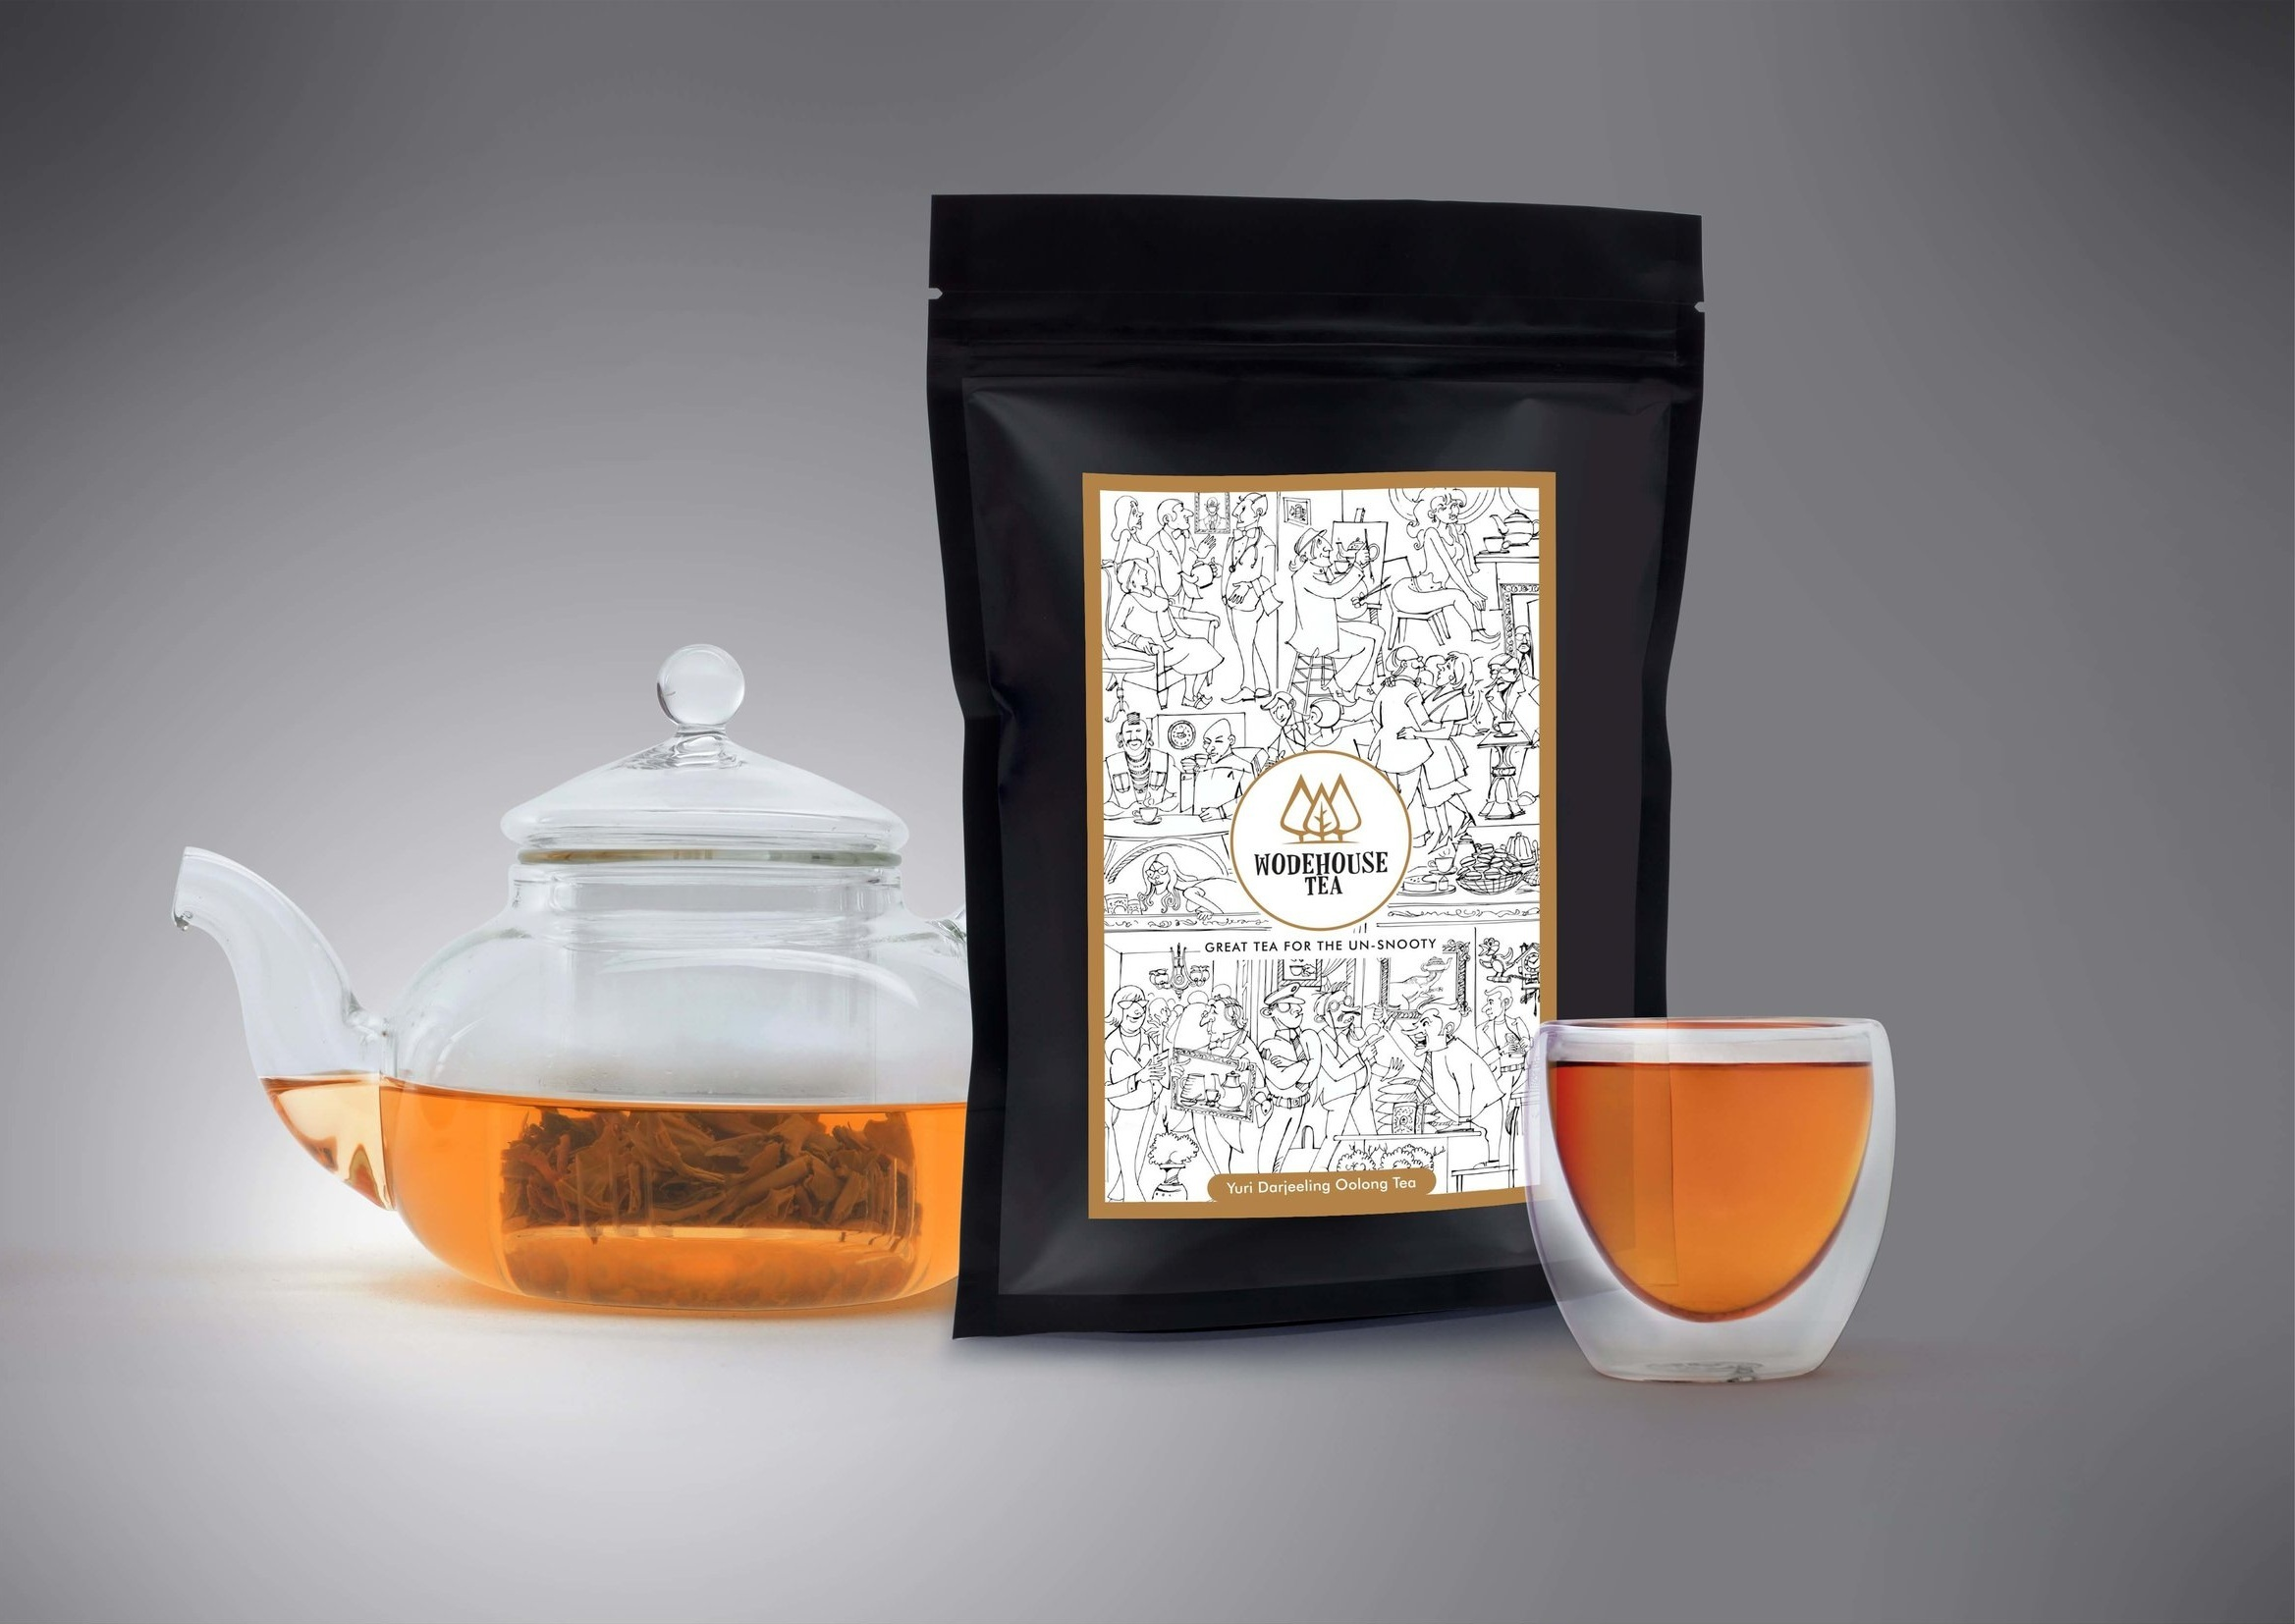 Not snooty.Not hoity-toity.Just great tea. - Loved by 1,358 unsnooty tea drinkers around the world (and counting).